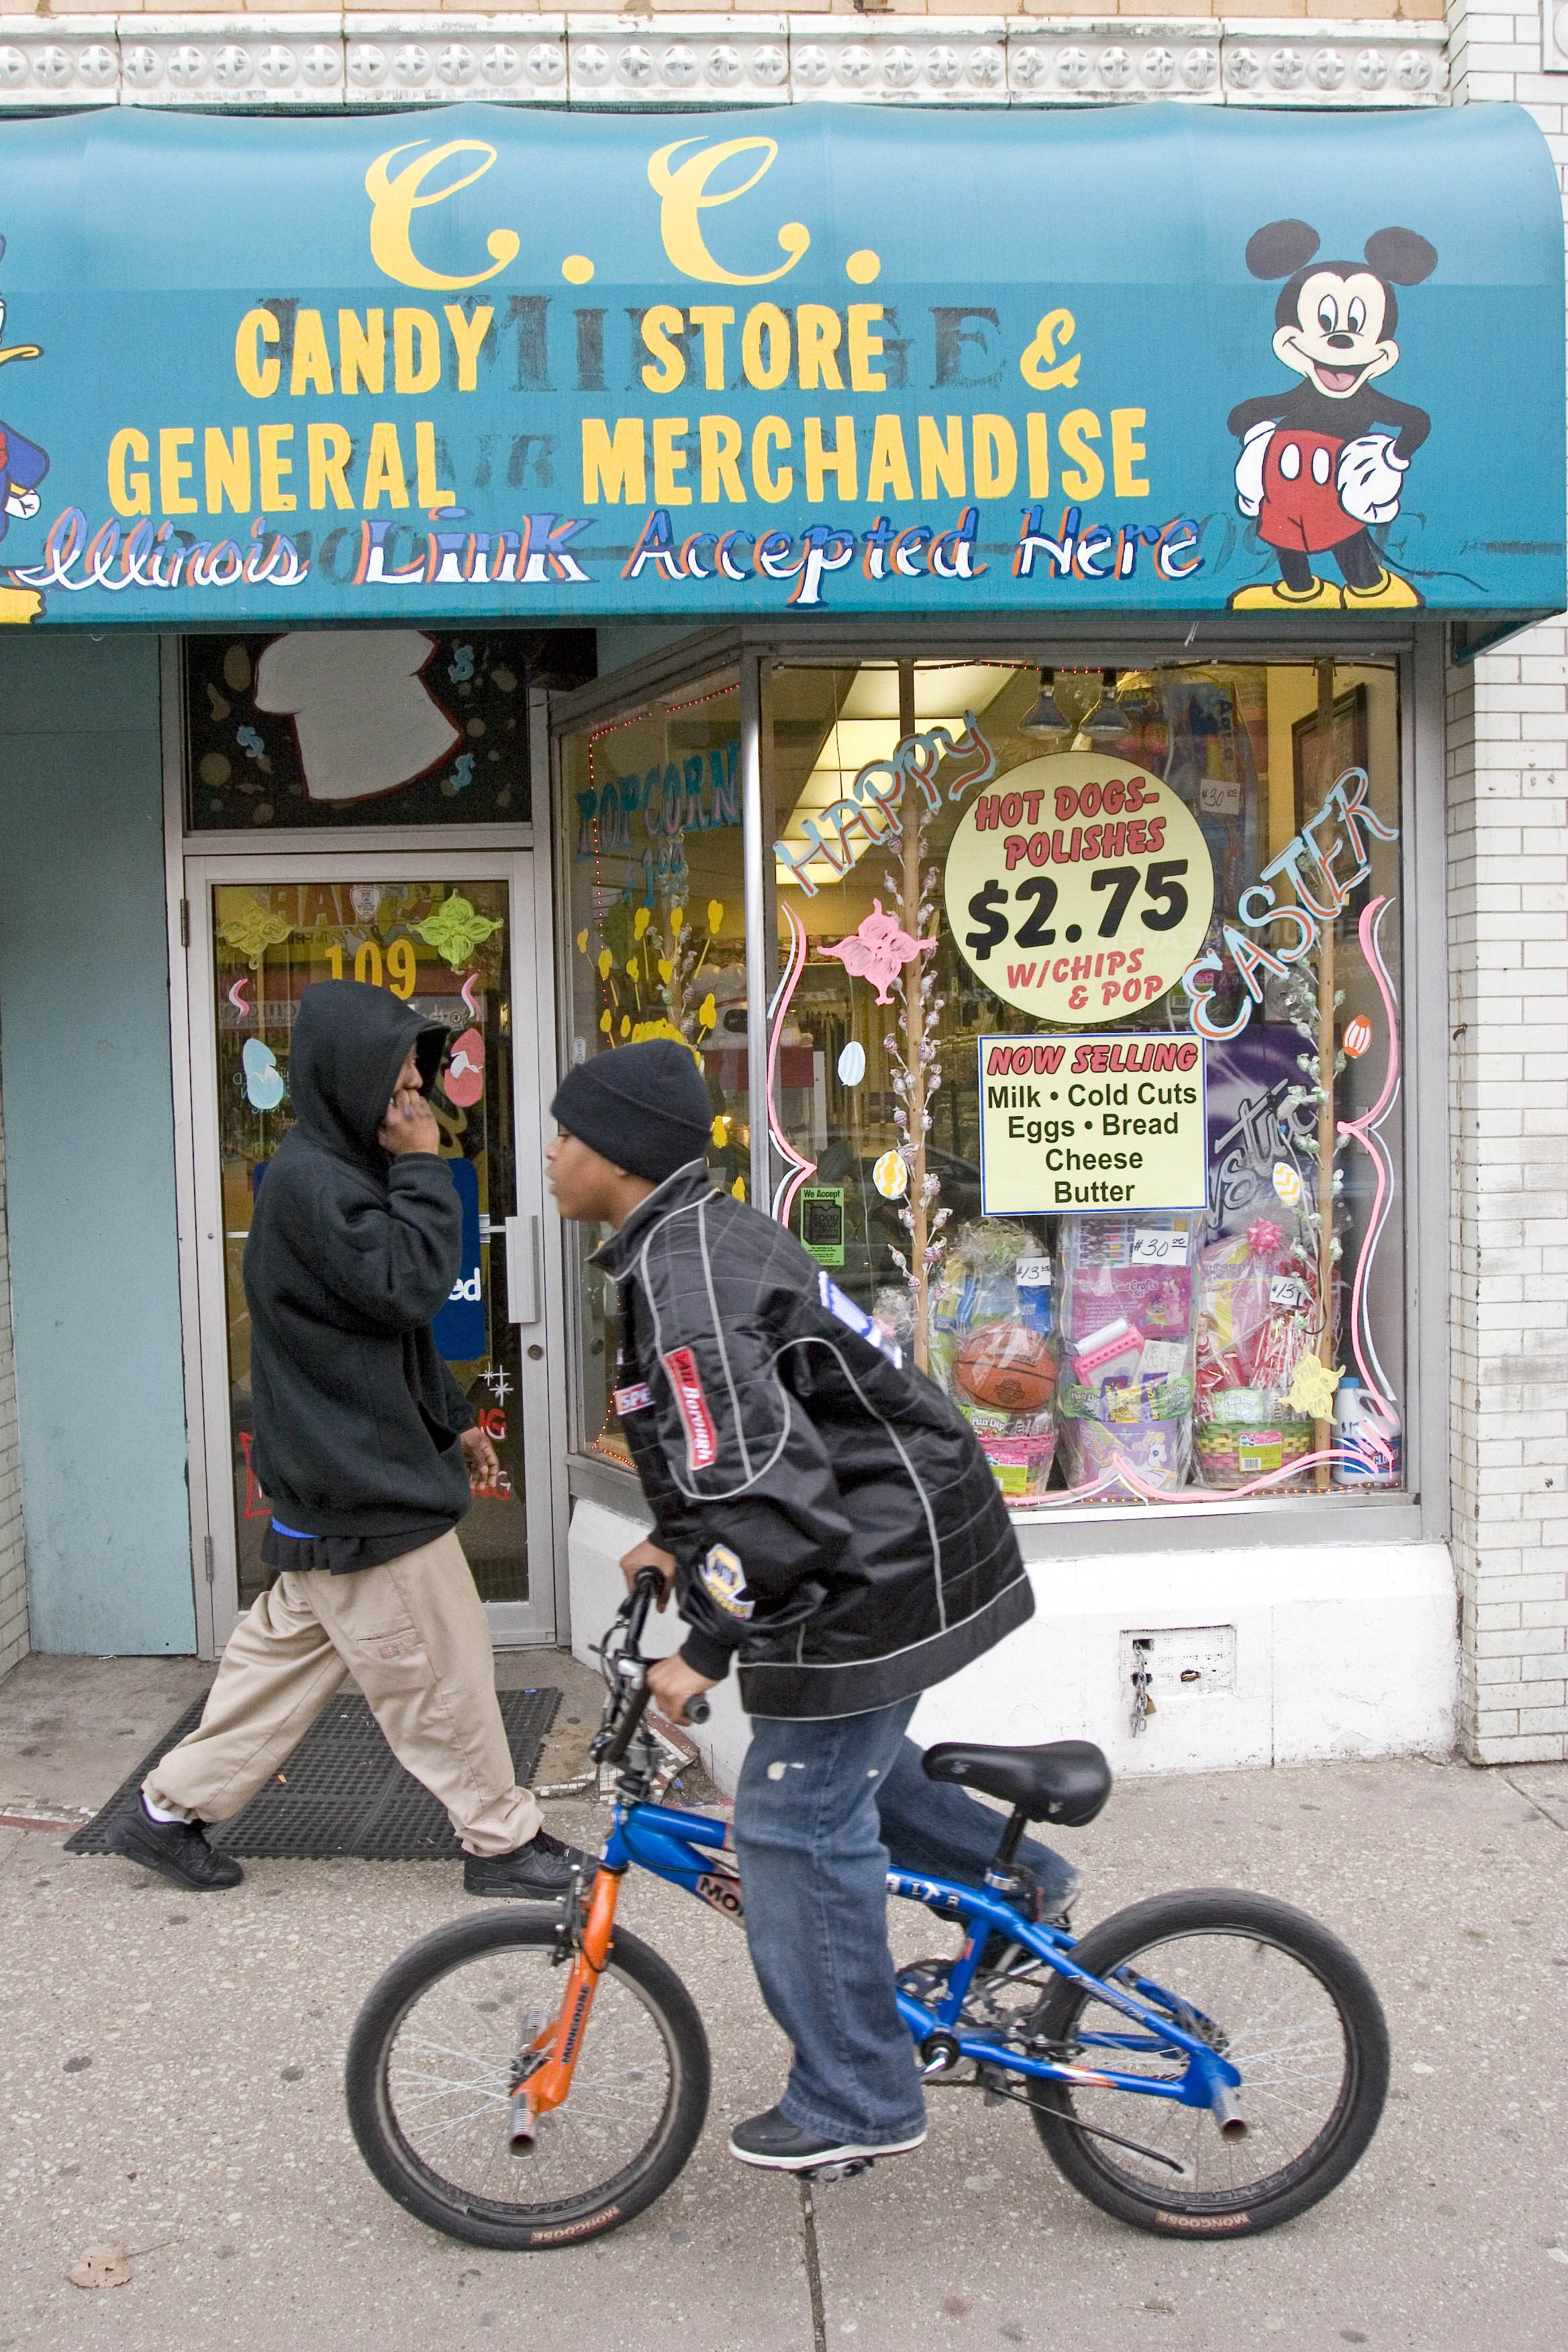 C.C. Candystore, 109 E. 47th St